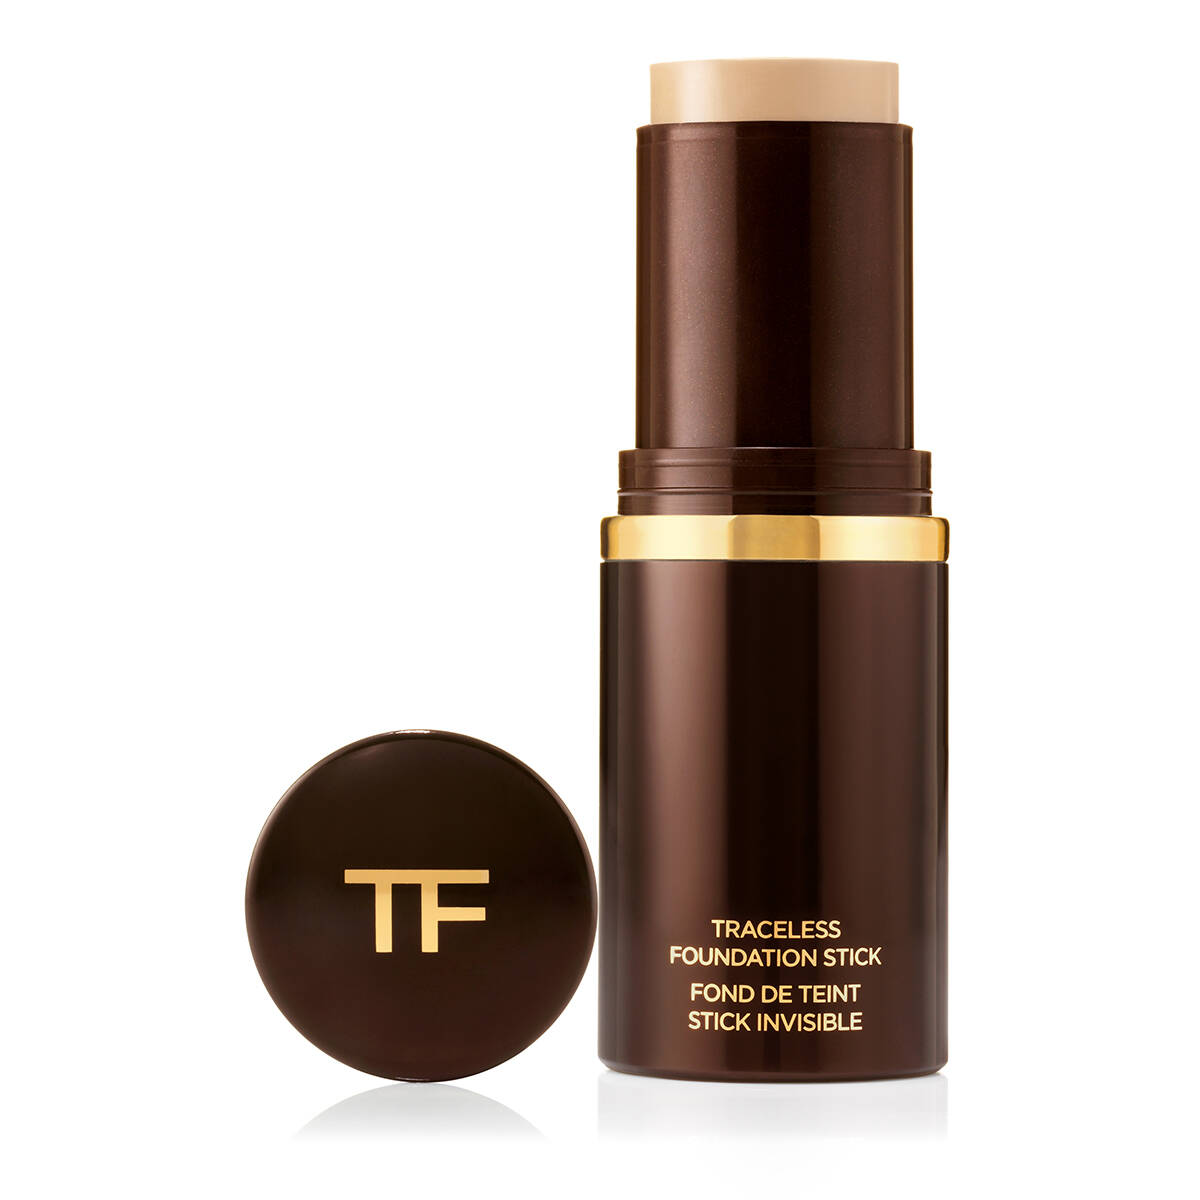 TOM FORD Traceless Foundation Stick (2.5 Linen | 15 g) Make Up, Gesicht, Foundation Cosmetics, Face von TOM FORD